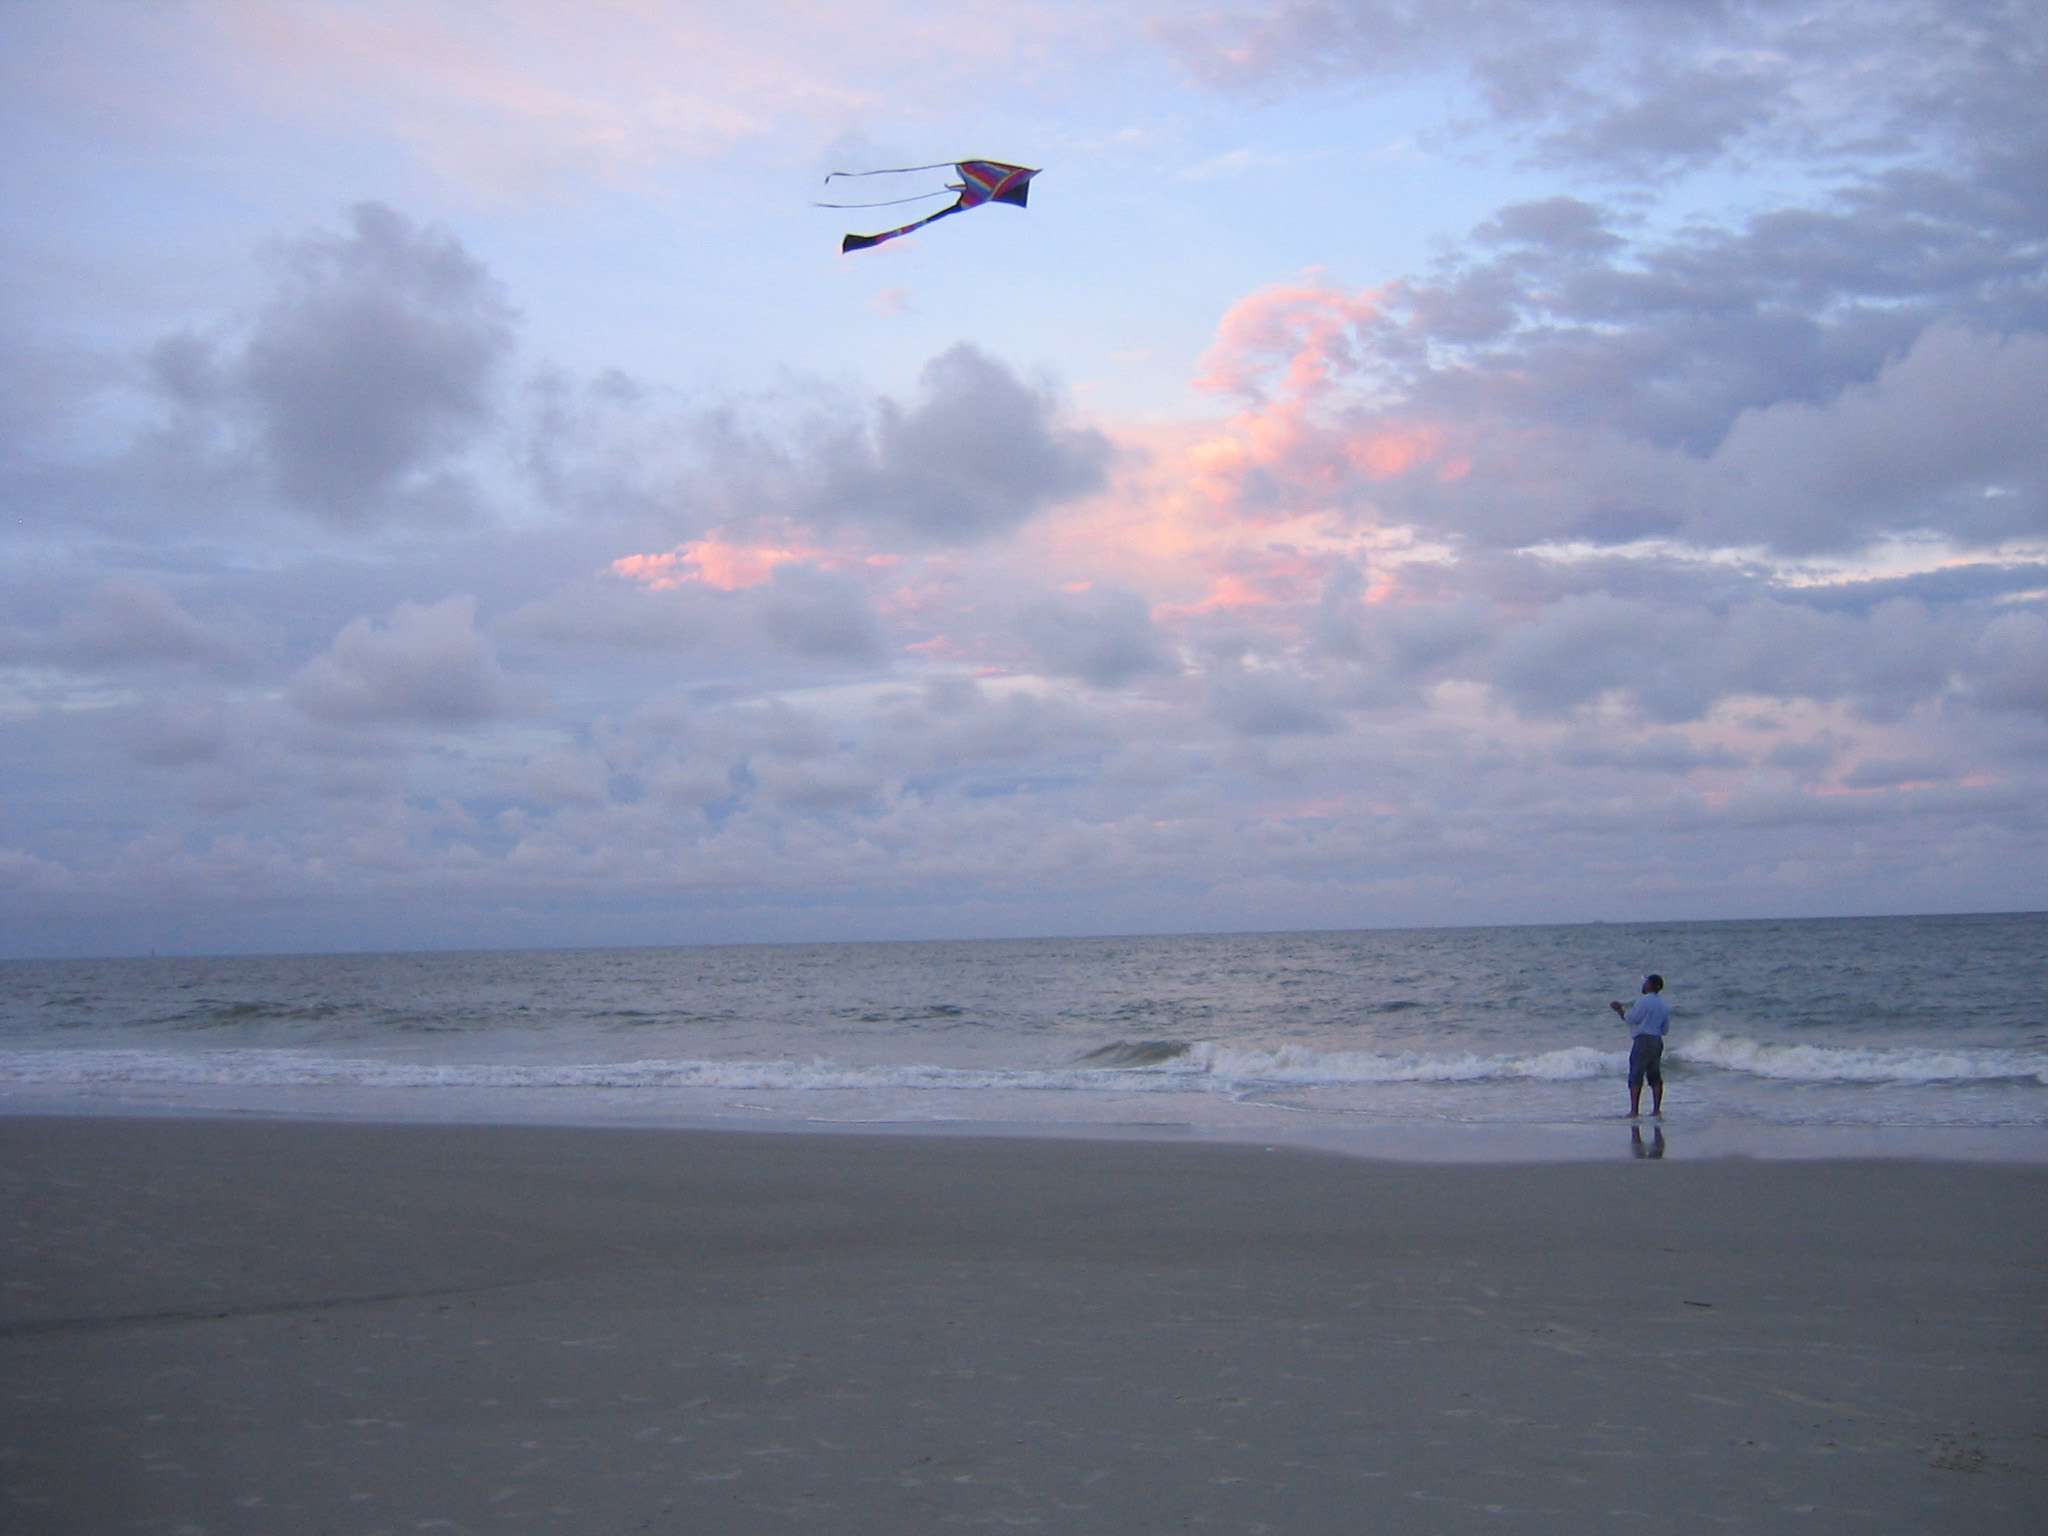 Man_flying_kite.jpg